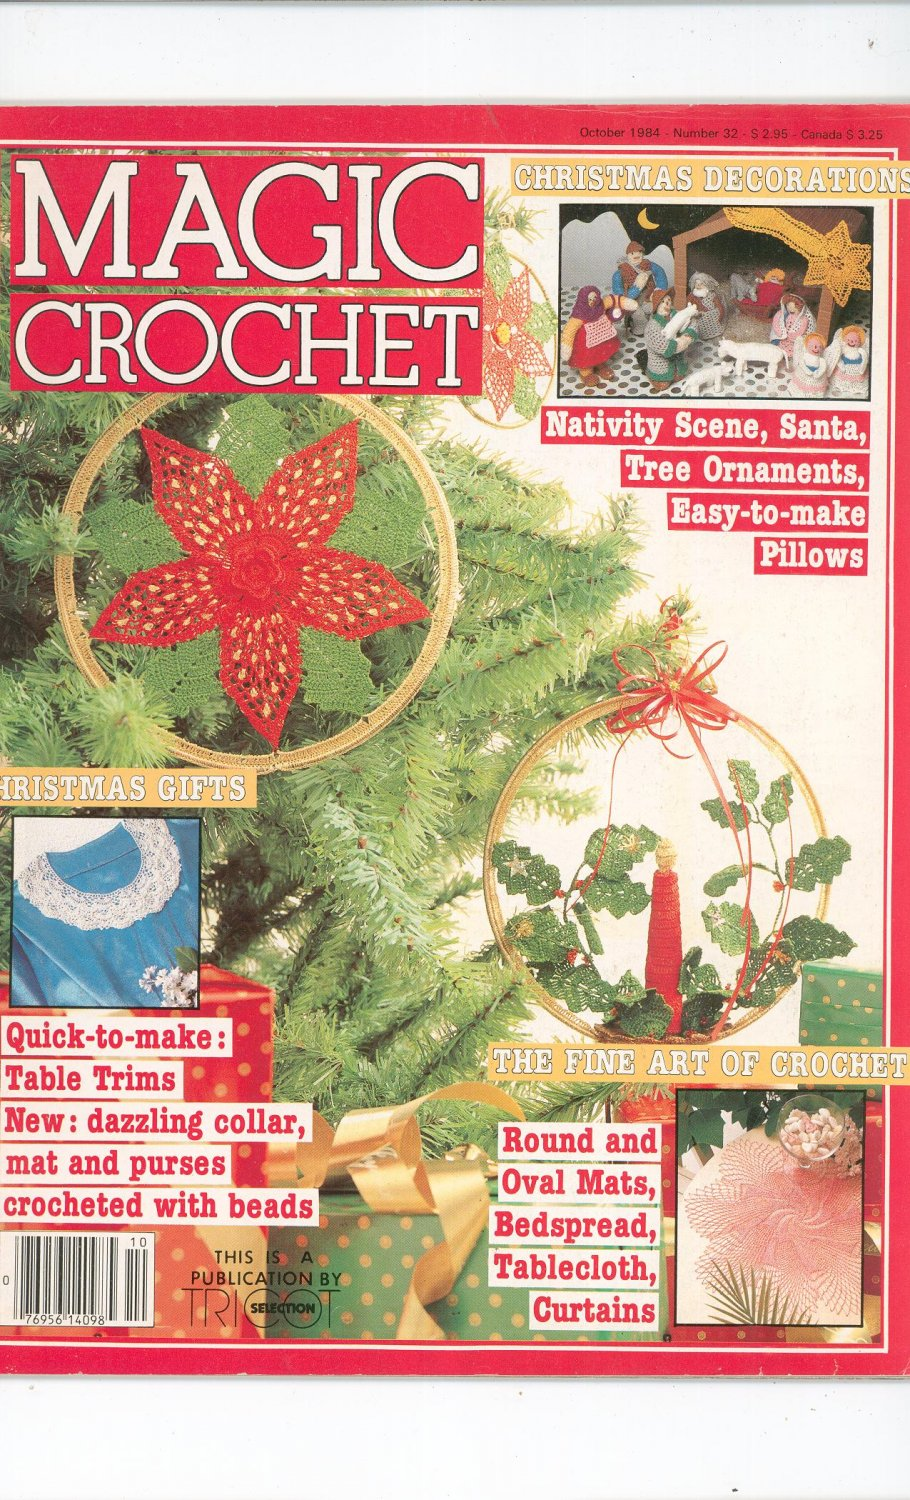 Magic Crochet Number 32 October 1984 Tricot Selection